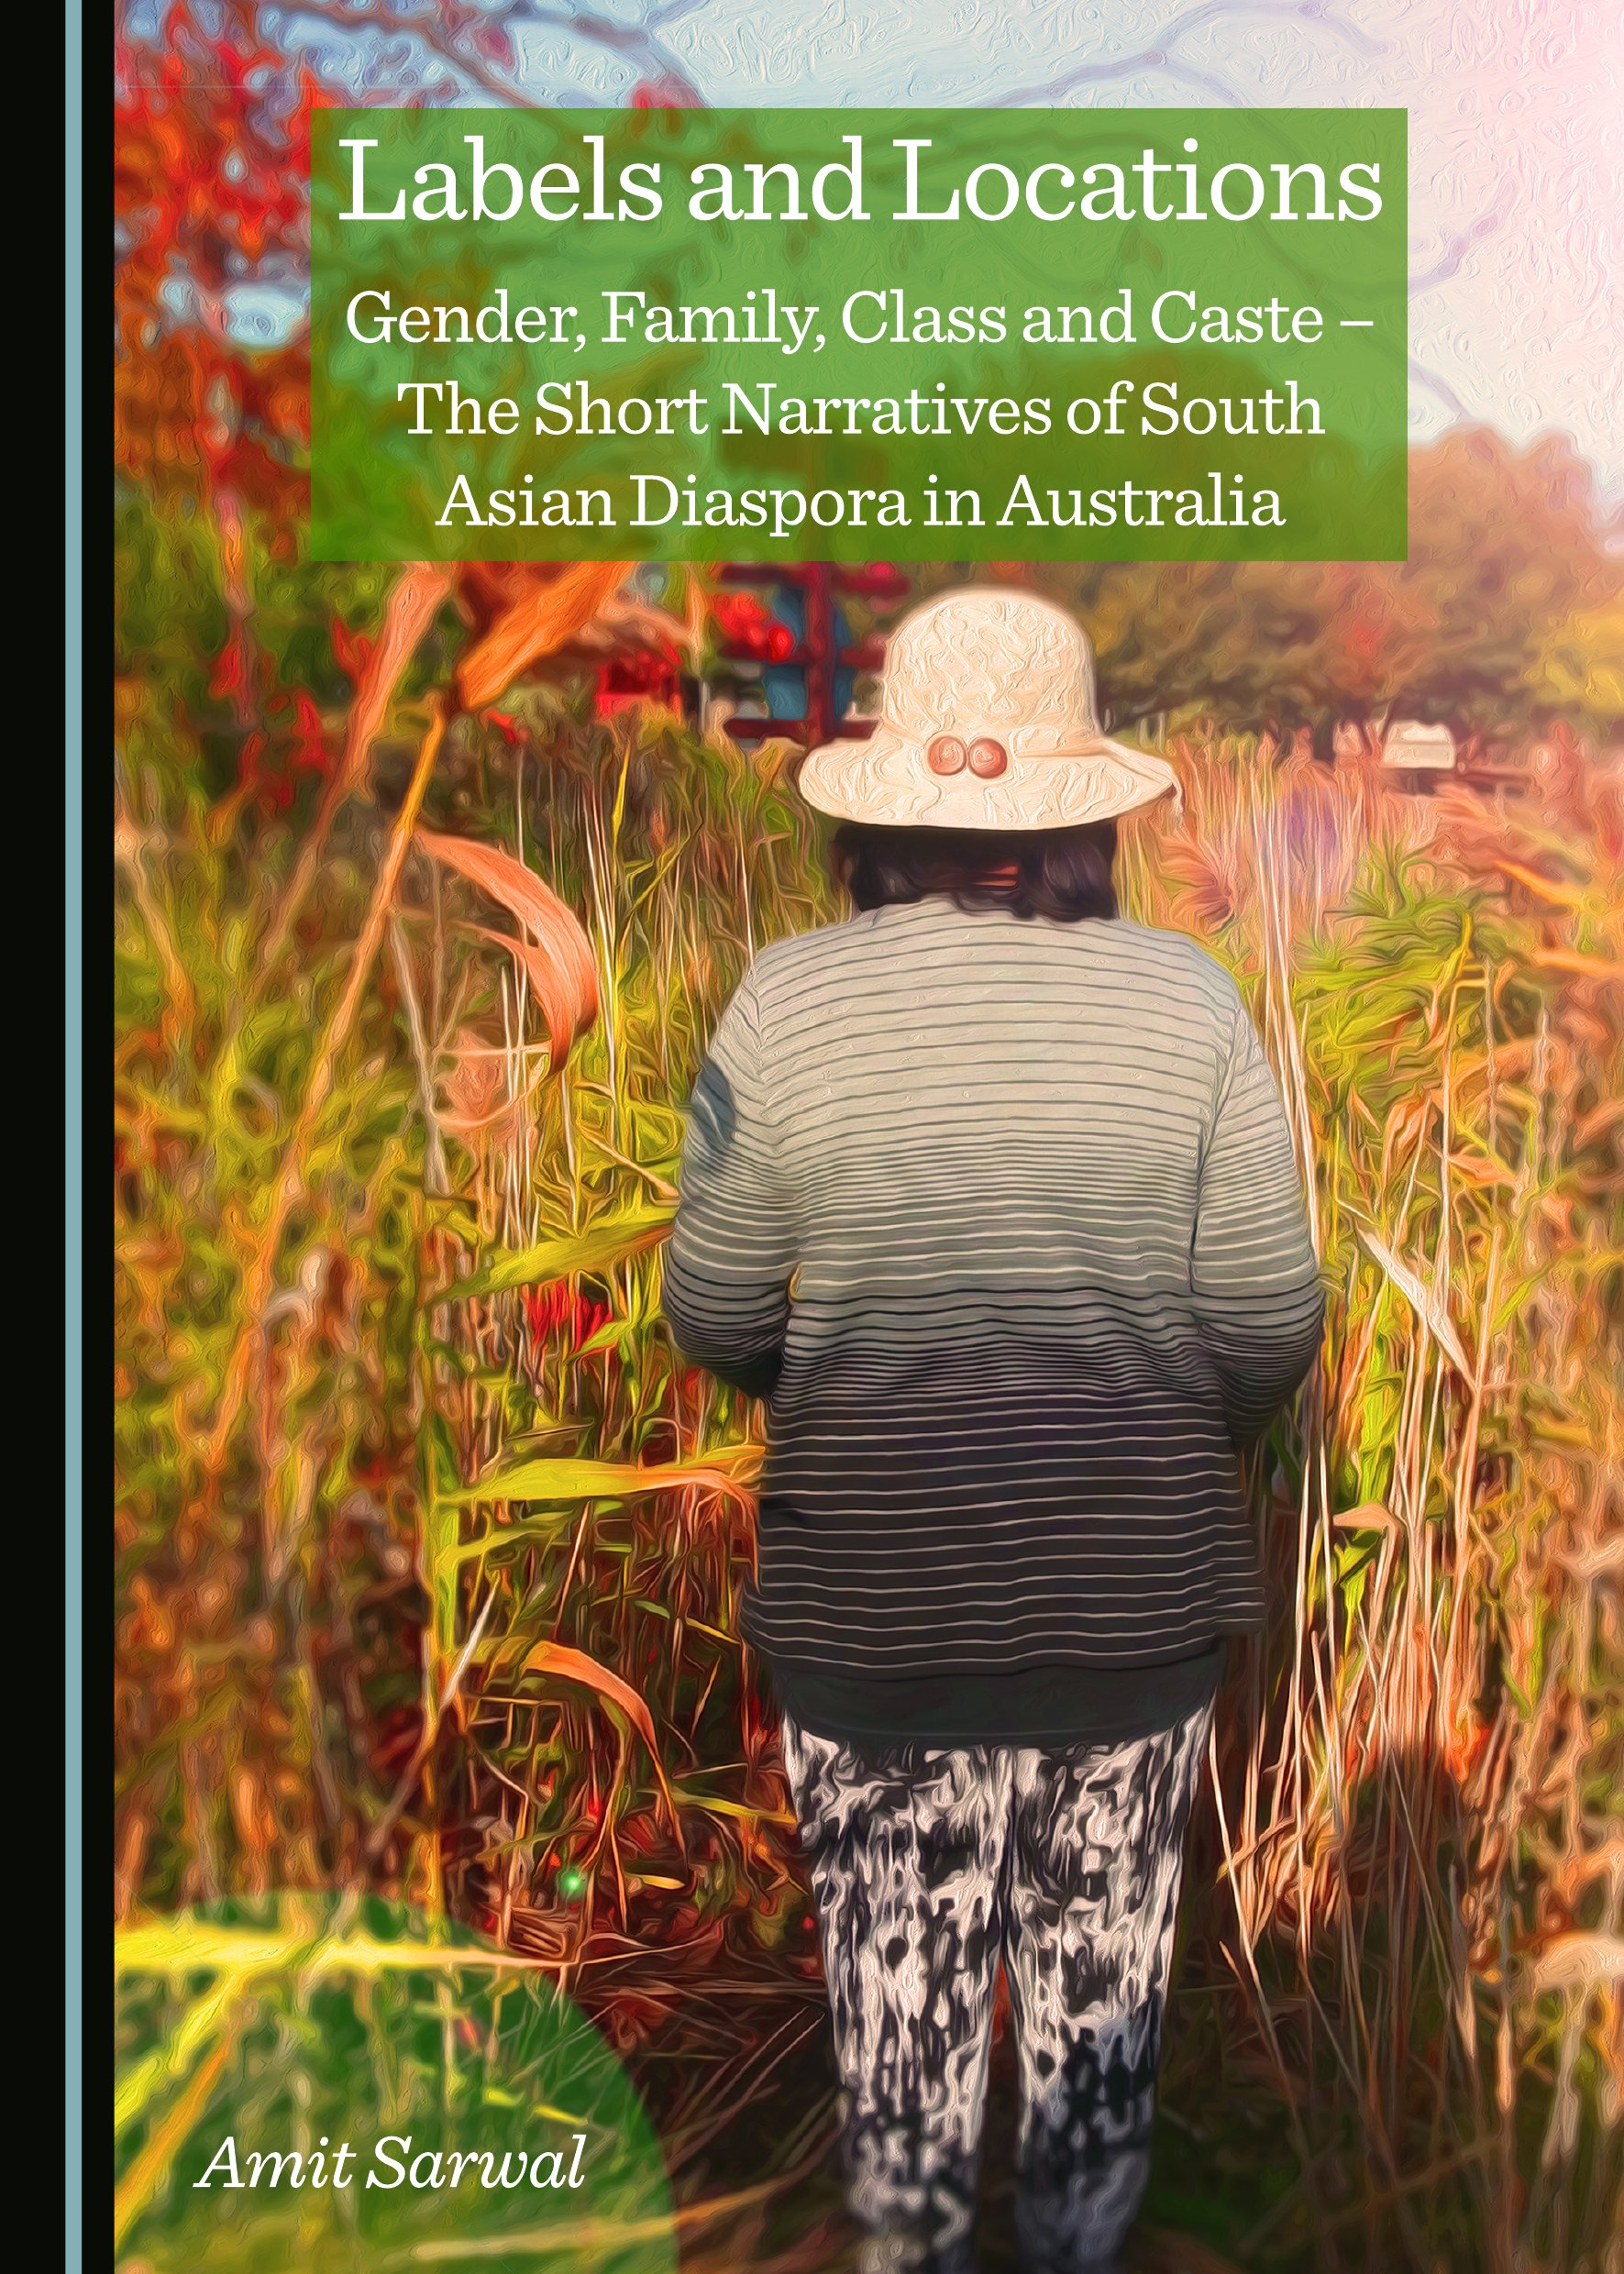 Labels and Locations: Gender, Family, Class and Caste – The Short Narratives of South Asian Diaspora in Australia